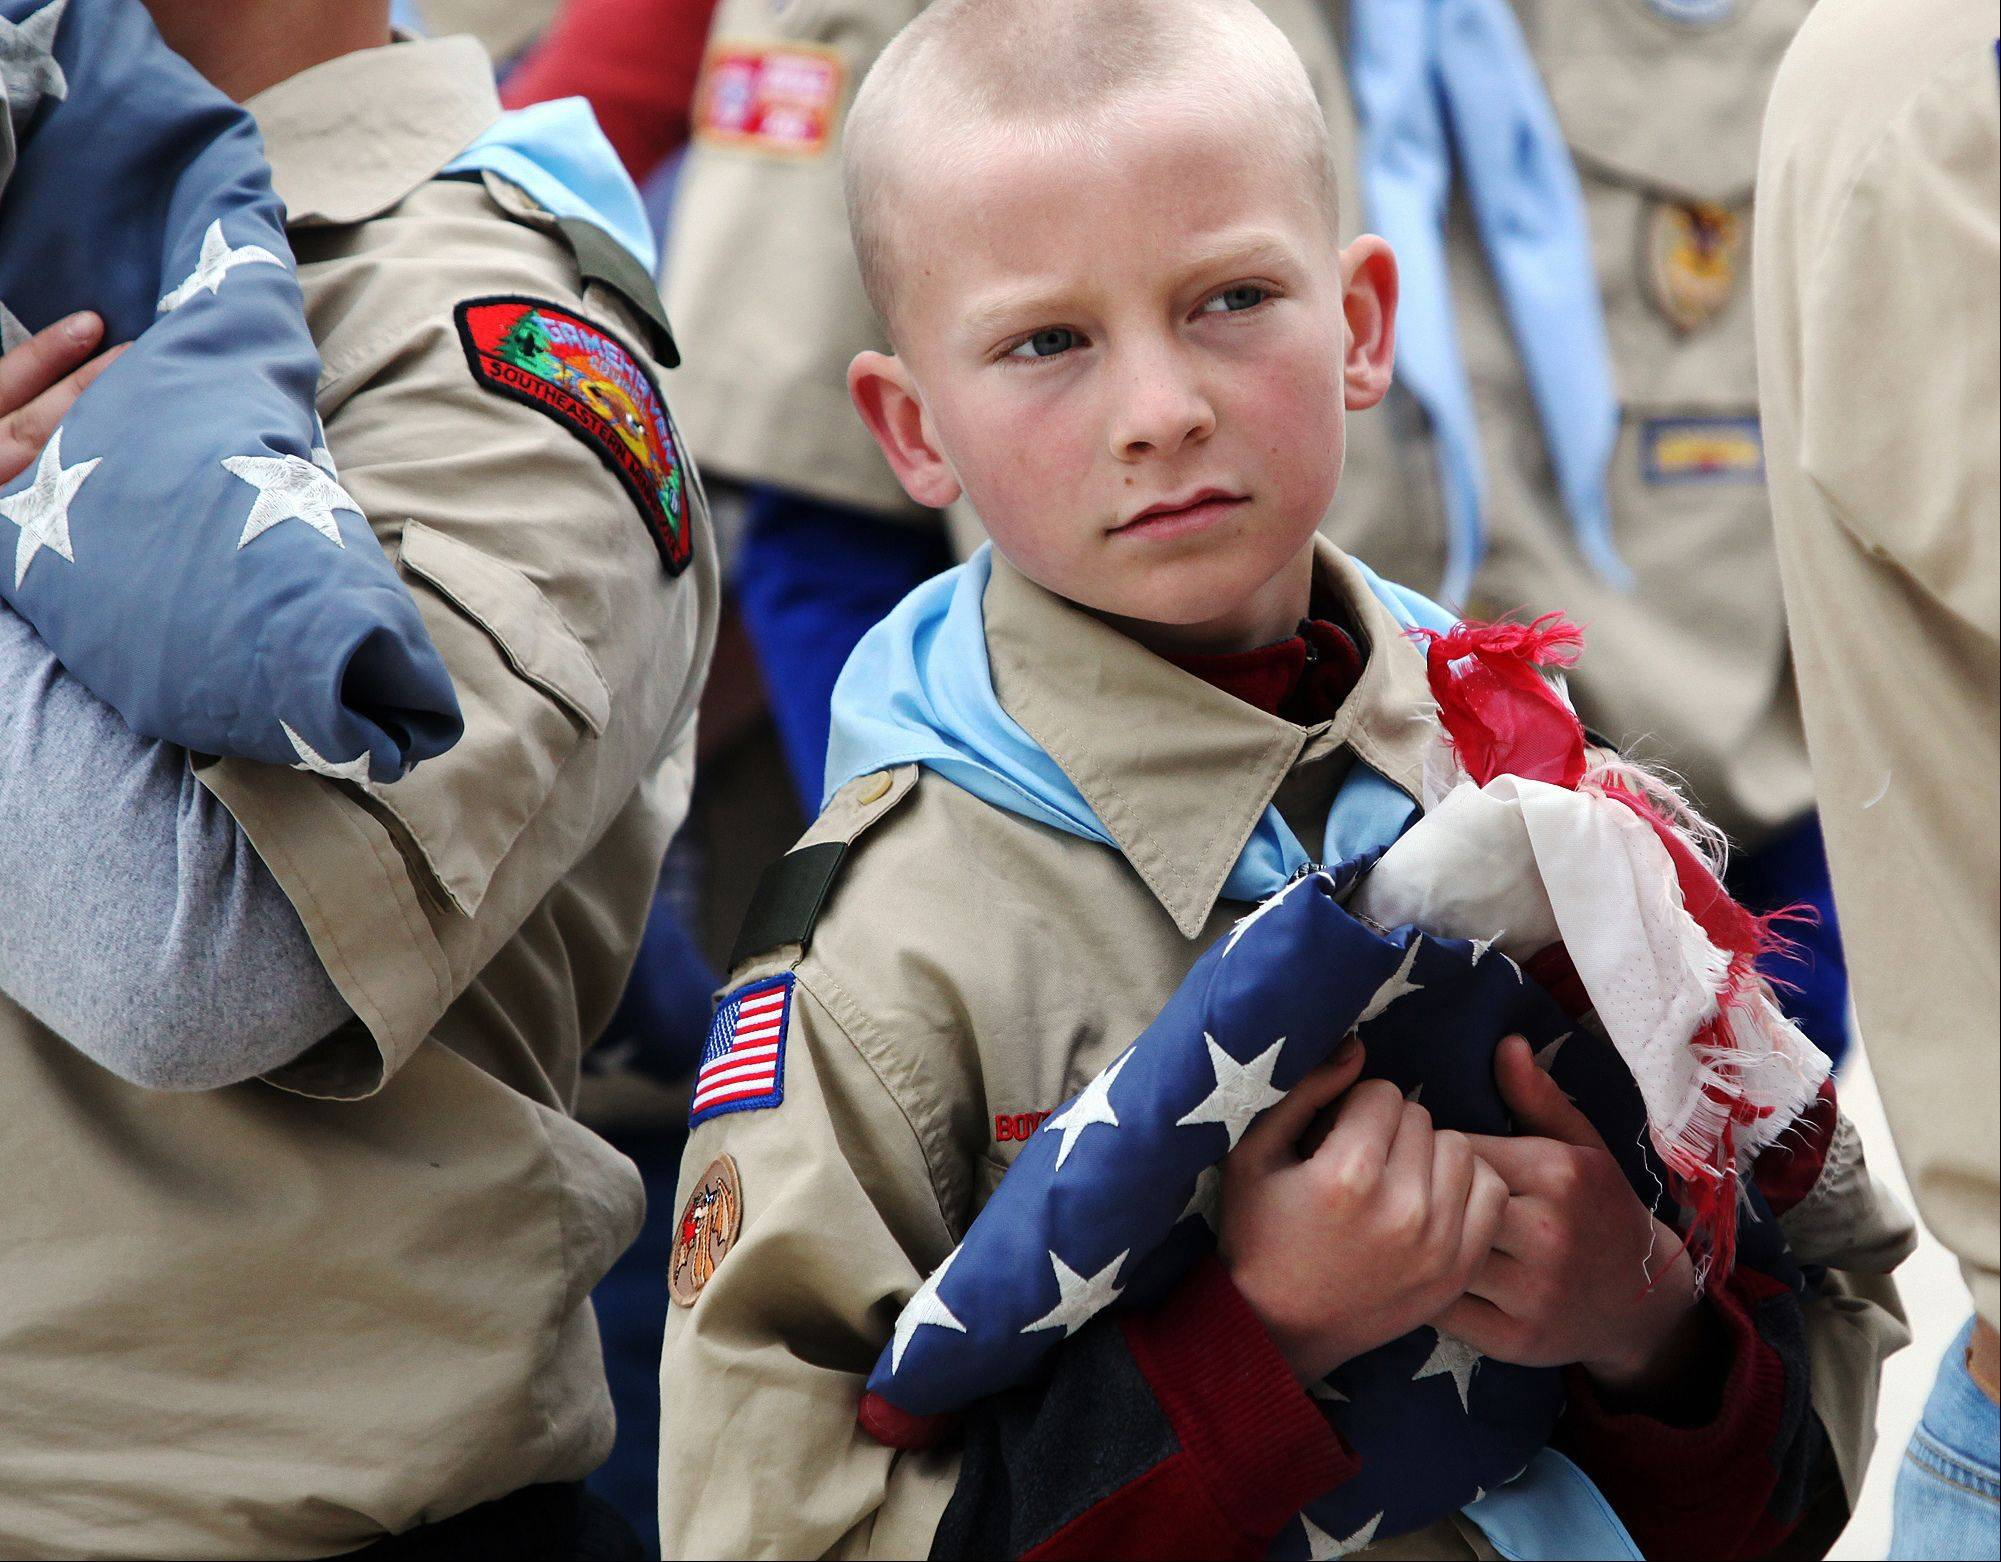 Jeremy Rivers of Boy Scout Troop 13 from St. Mary's Catholic Church holds a tattered American flag Monday, May 27, 2013, during a Memorial Day flag retirement ceremony at Sugarloaf Assisted Living in Winona, Minn. The troop retired nine American flags from the community by burning them in a ceremonial fire and later burying the ashes.